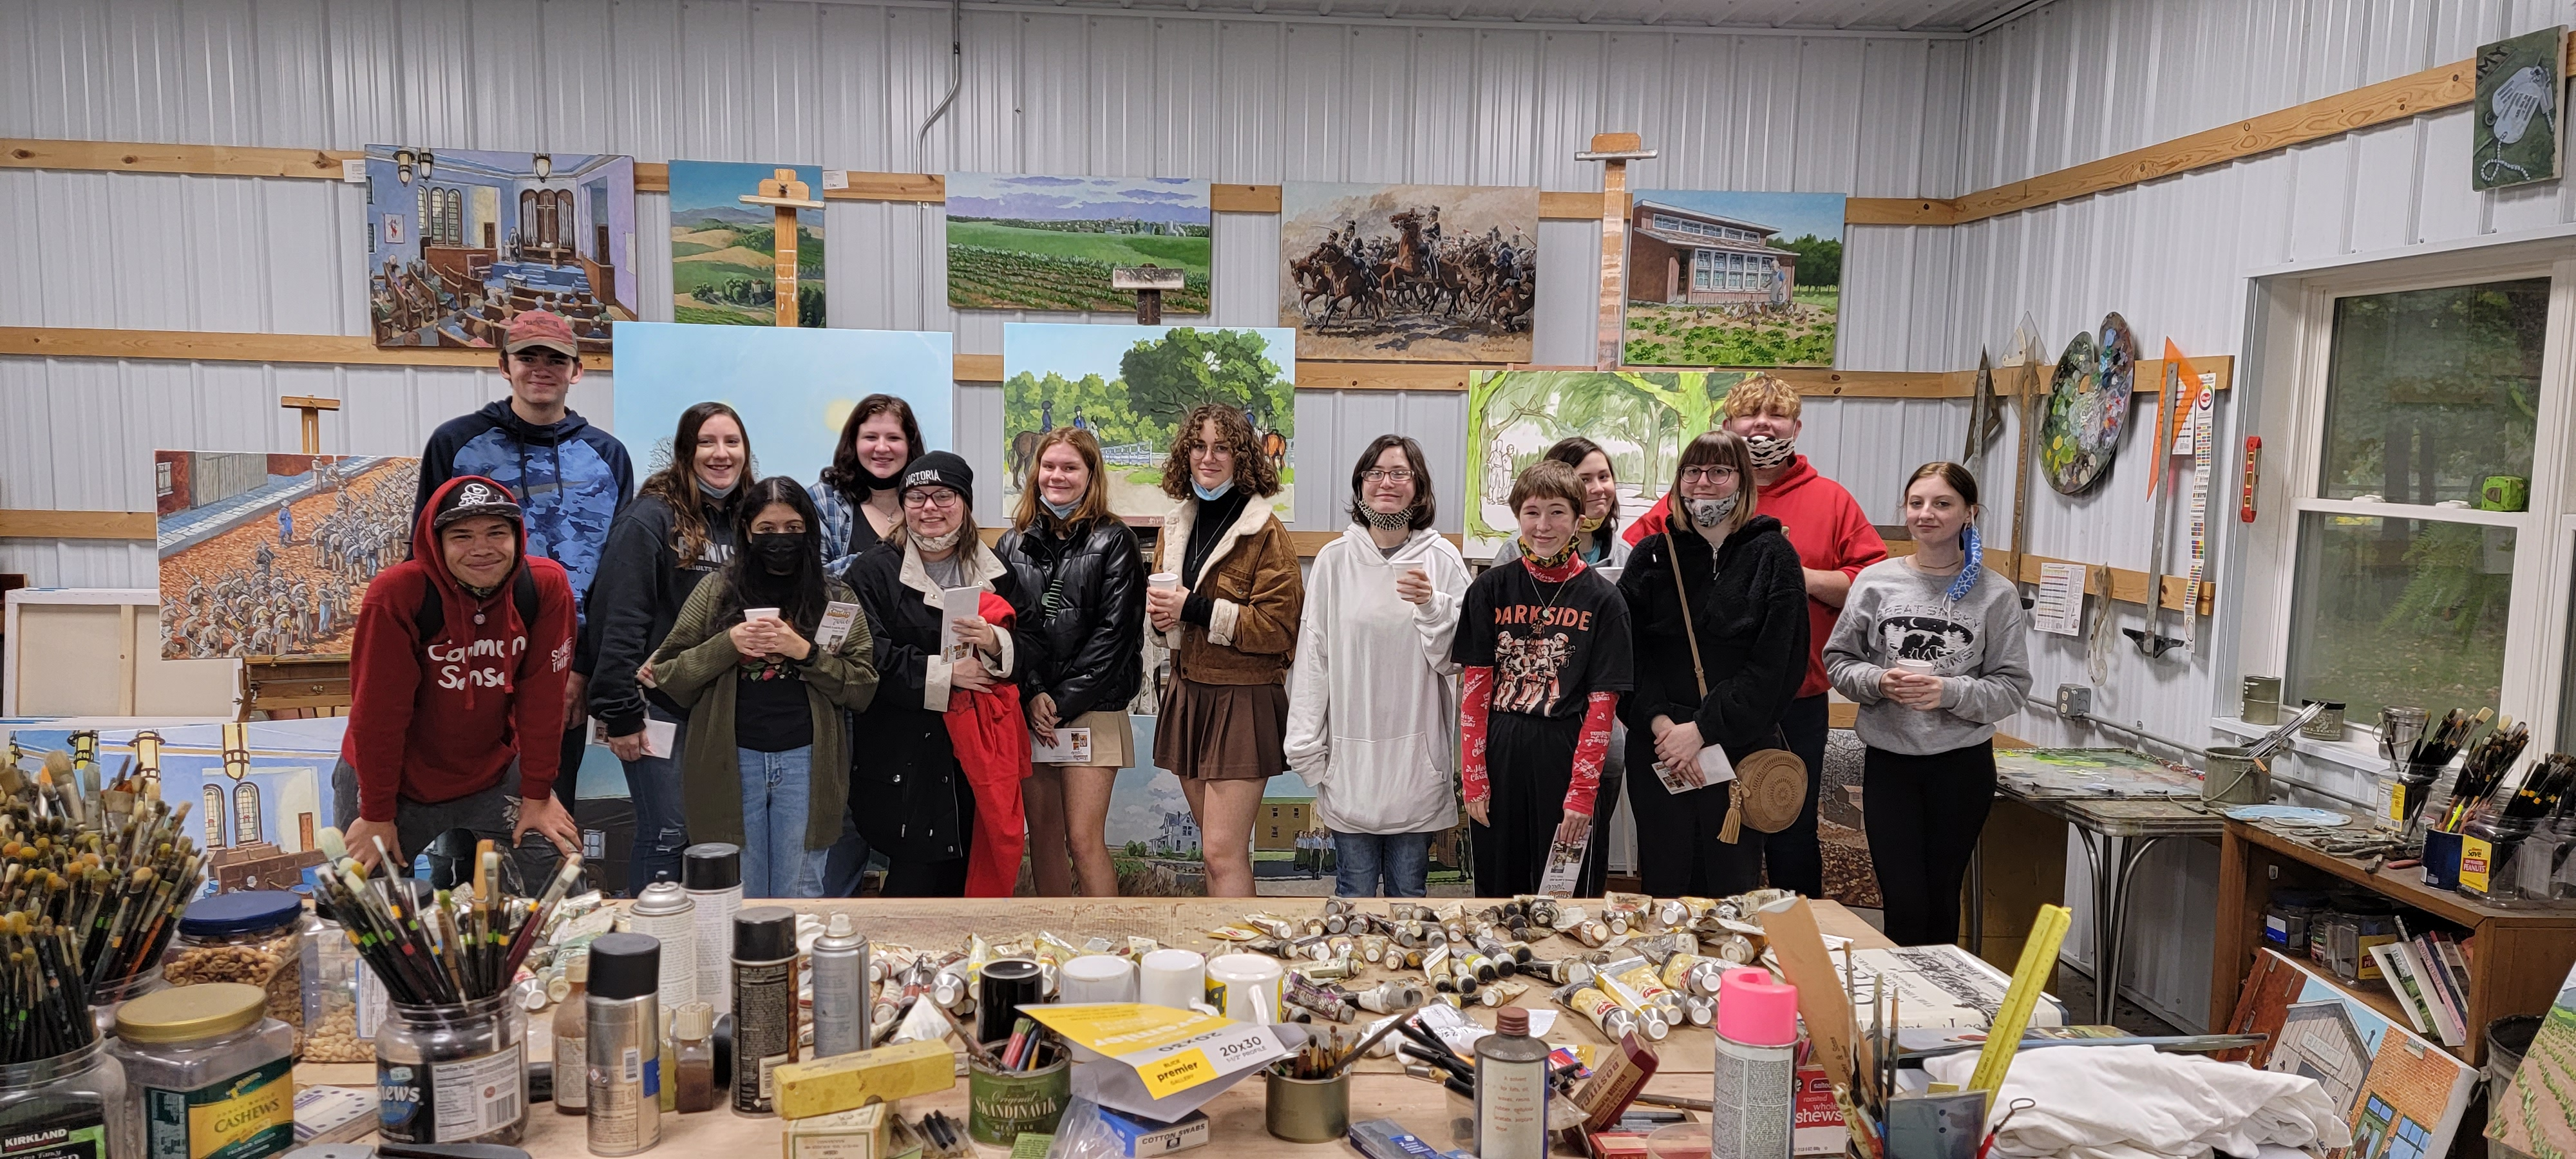 Another successful Northeast Iowa Studio Tour! This group asked great questions, spoke with the artists, and just were an all around great group to take. I'm so grateful for being able to do this. We teach the next generation to love art, support artists and hopefully add more to the world.